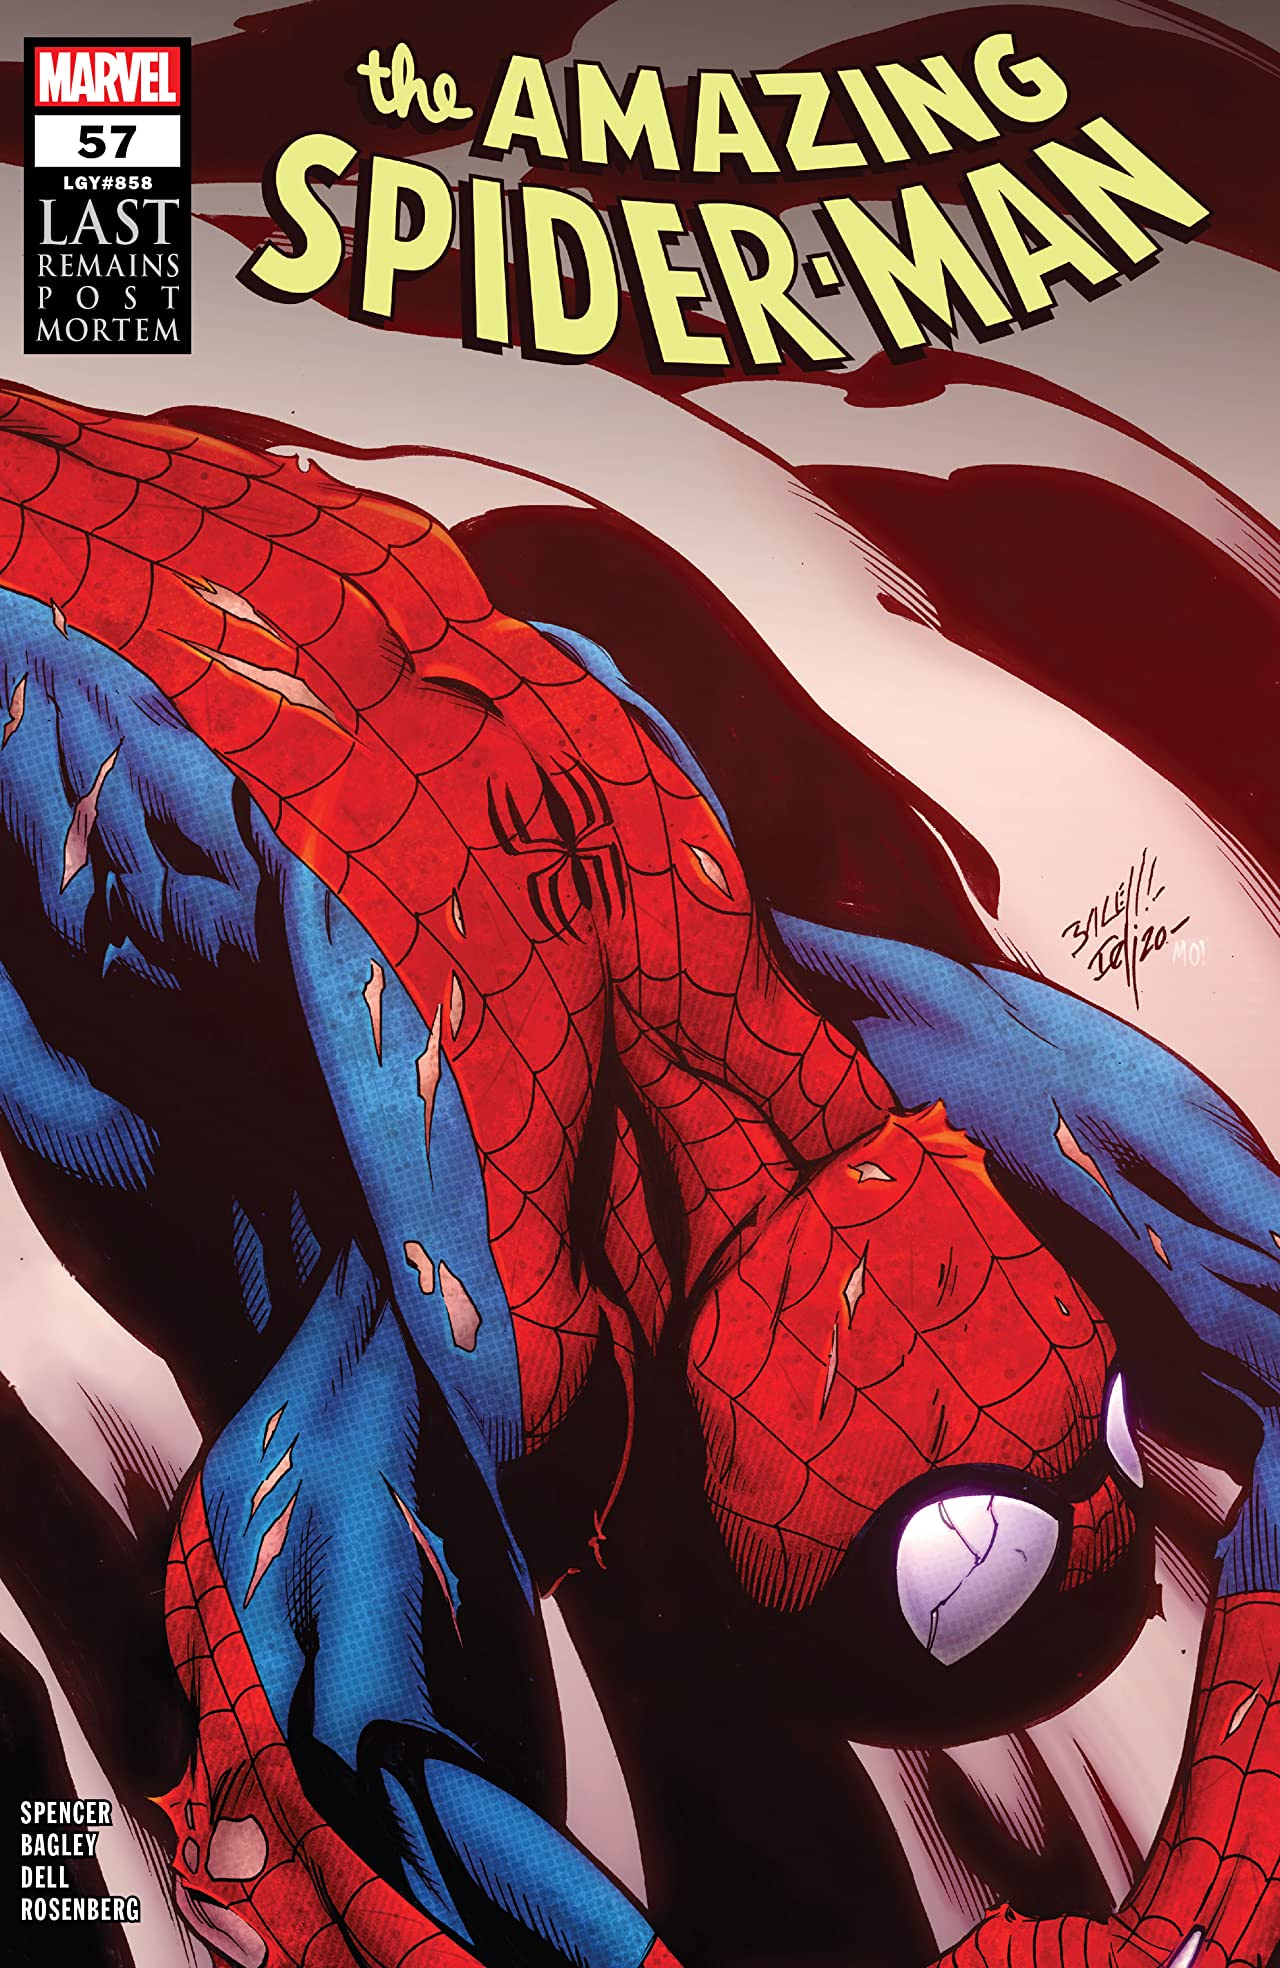 REVIEW: Amazing Spider-Man #57